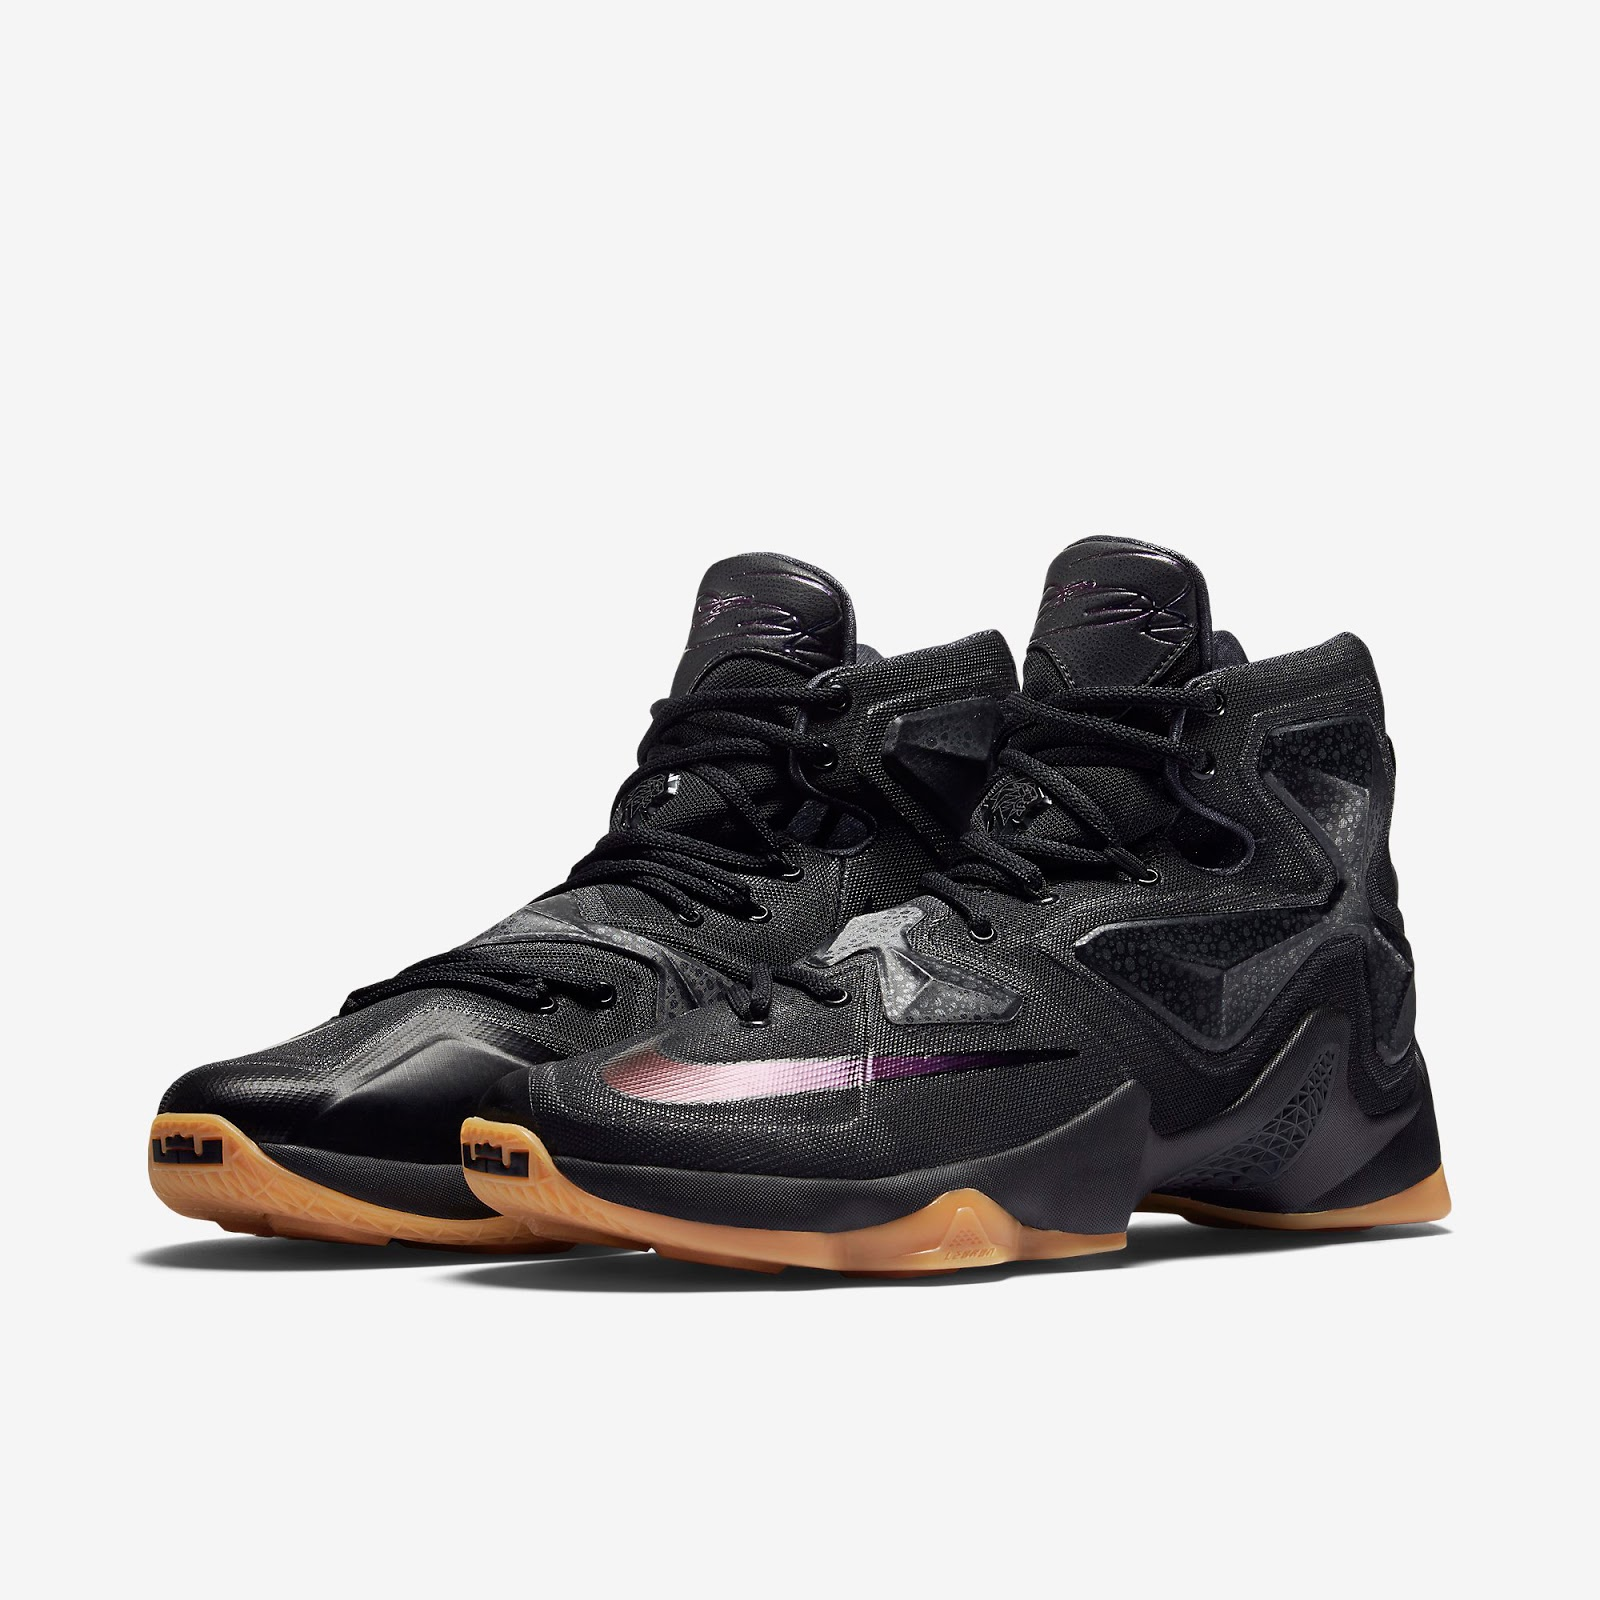 finest selection d4d4f 71886 ... germany known as the black lion edition this nike lebron 13 comes in a black  black